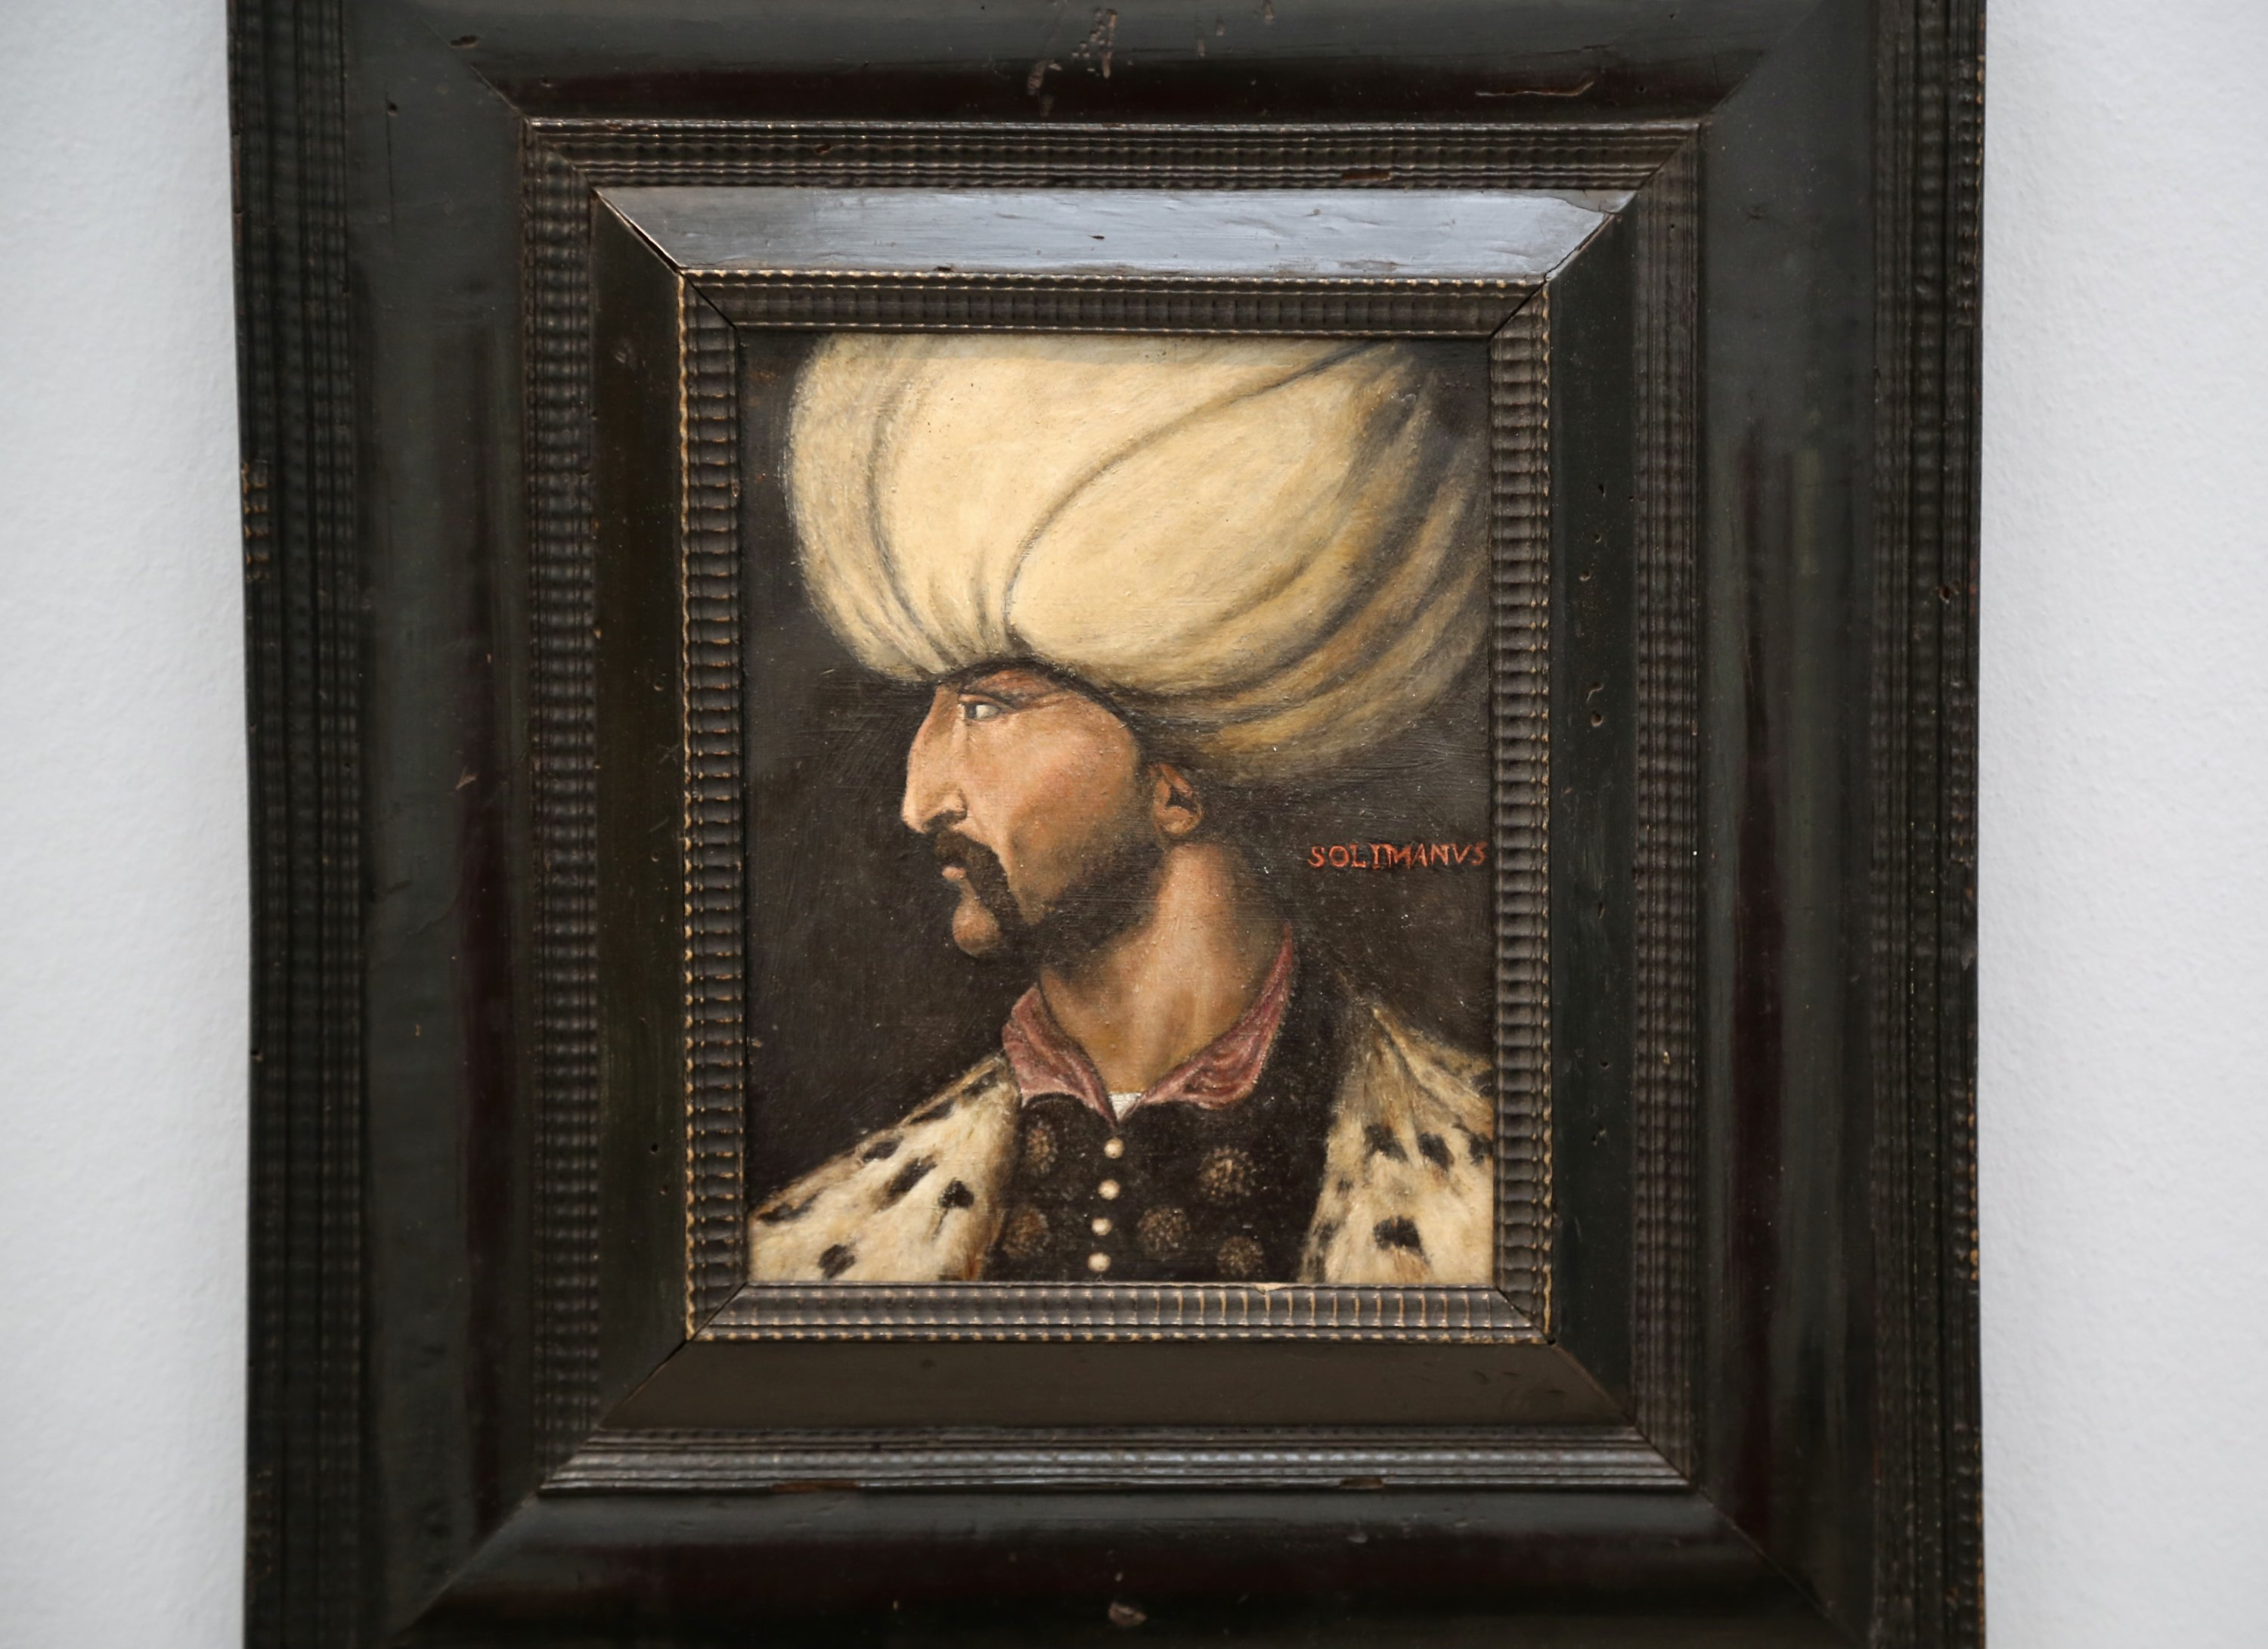 A close-up of the portrait of Ottoman Sultan Suleiman I at Sotheby's, London, U.K., March 31, 2021. (AA Photo)